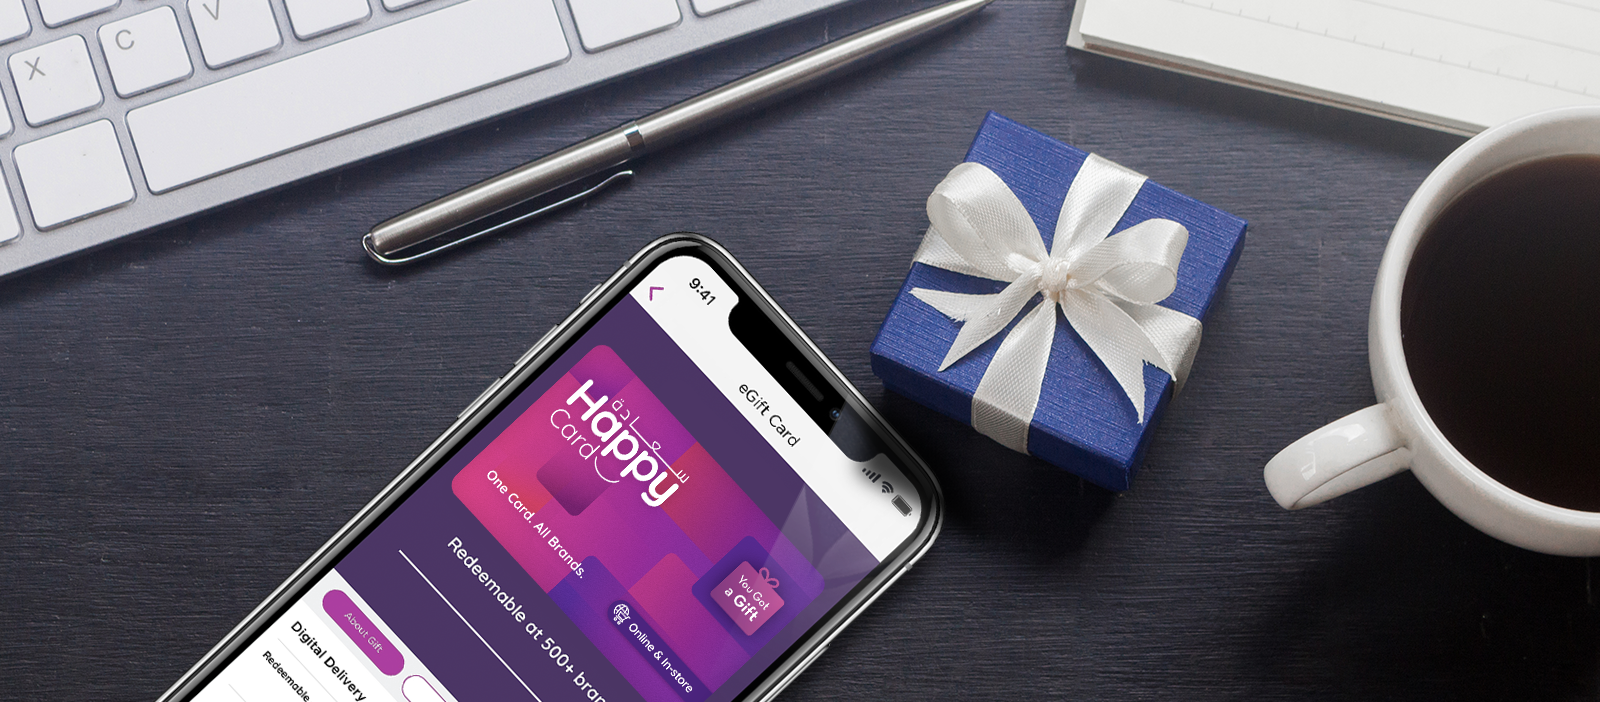 Organize Group Gifts Online for Your Work Colleagues with eGift Cards